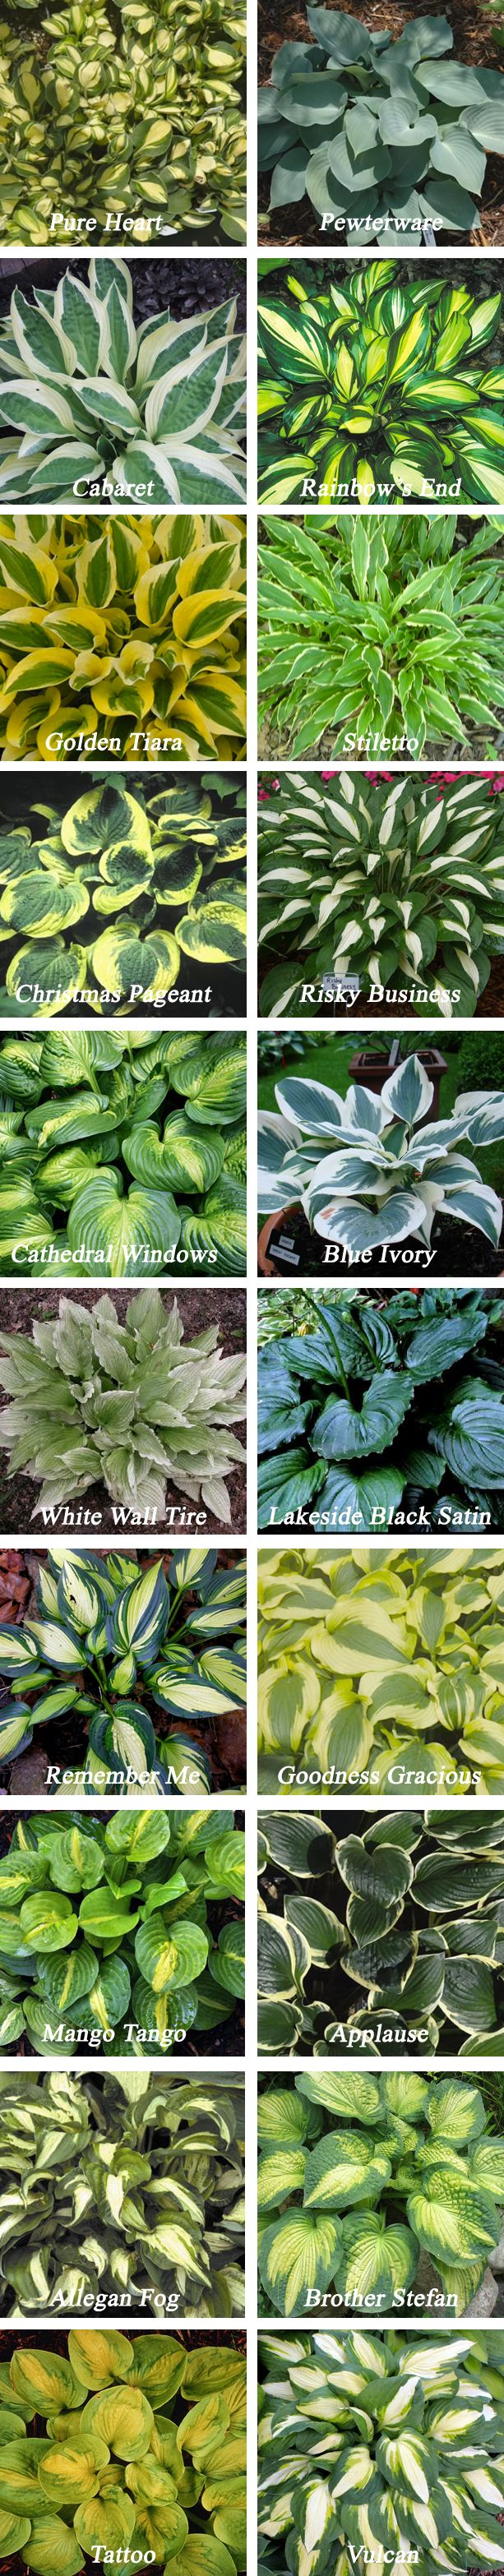 Types of hostas. Zones 3-8. Blooms summer or fall. Light to full shade. 6'' to 3' tall, 6'' to 5' wide.